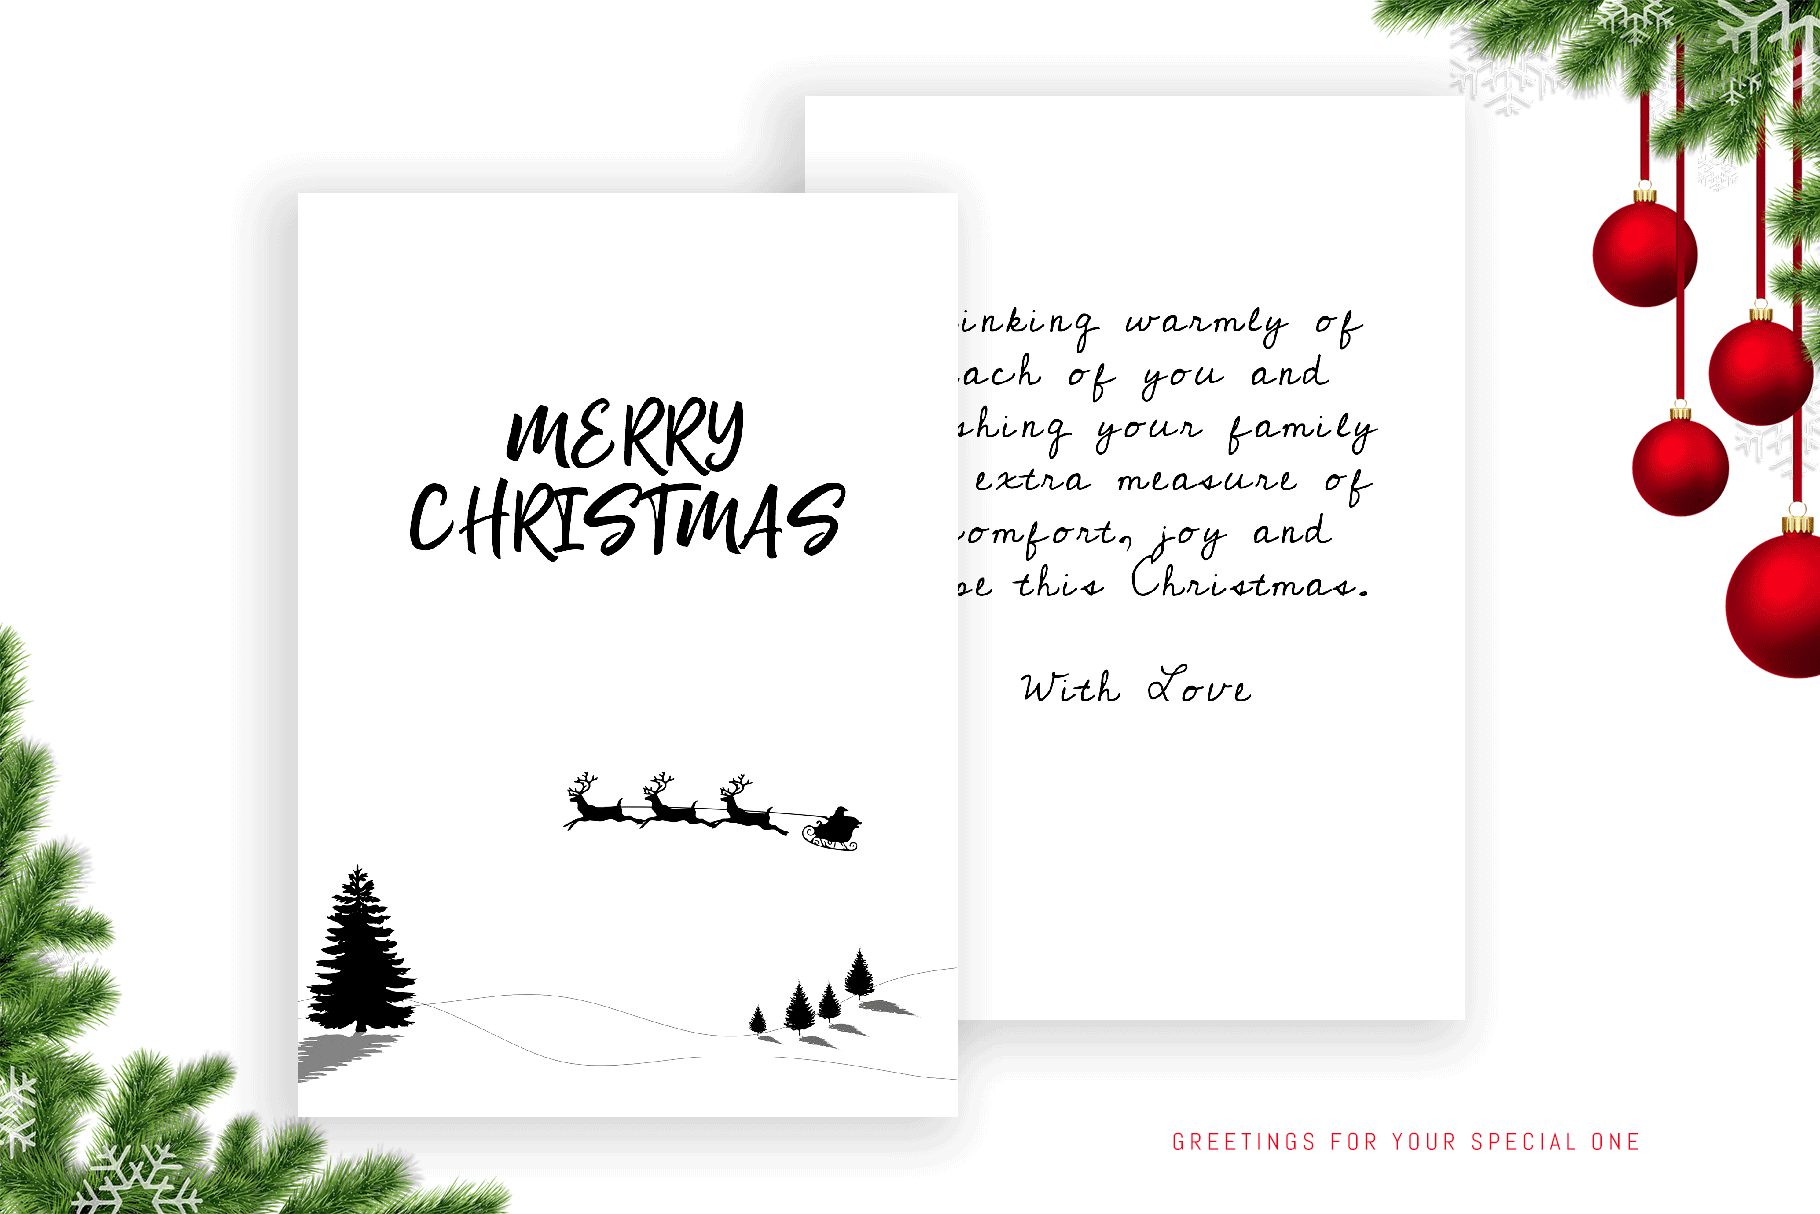 Christmas personalised greeting card for special one example image 1